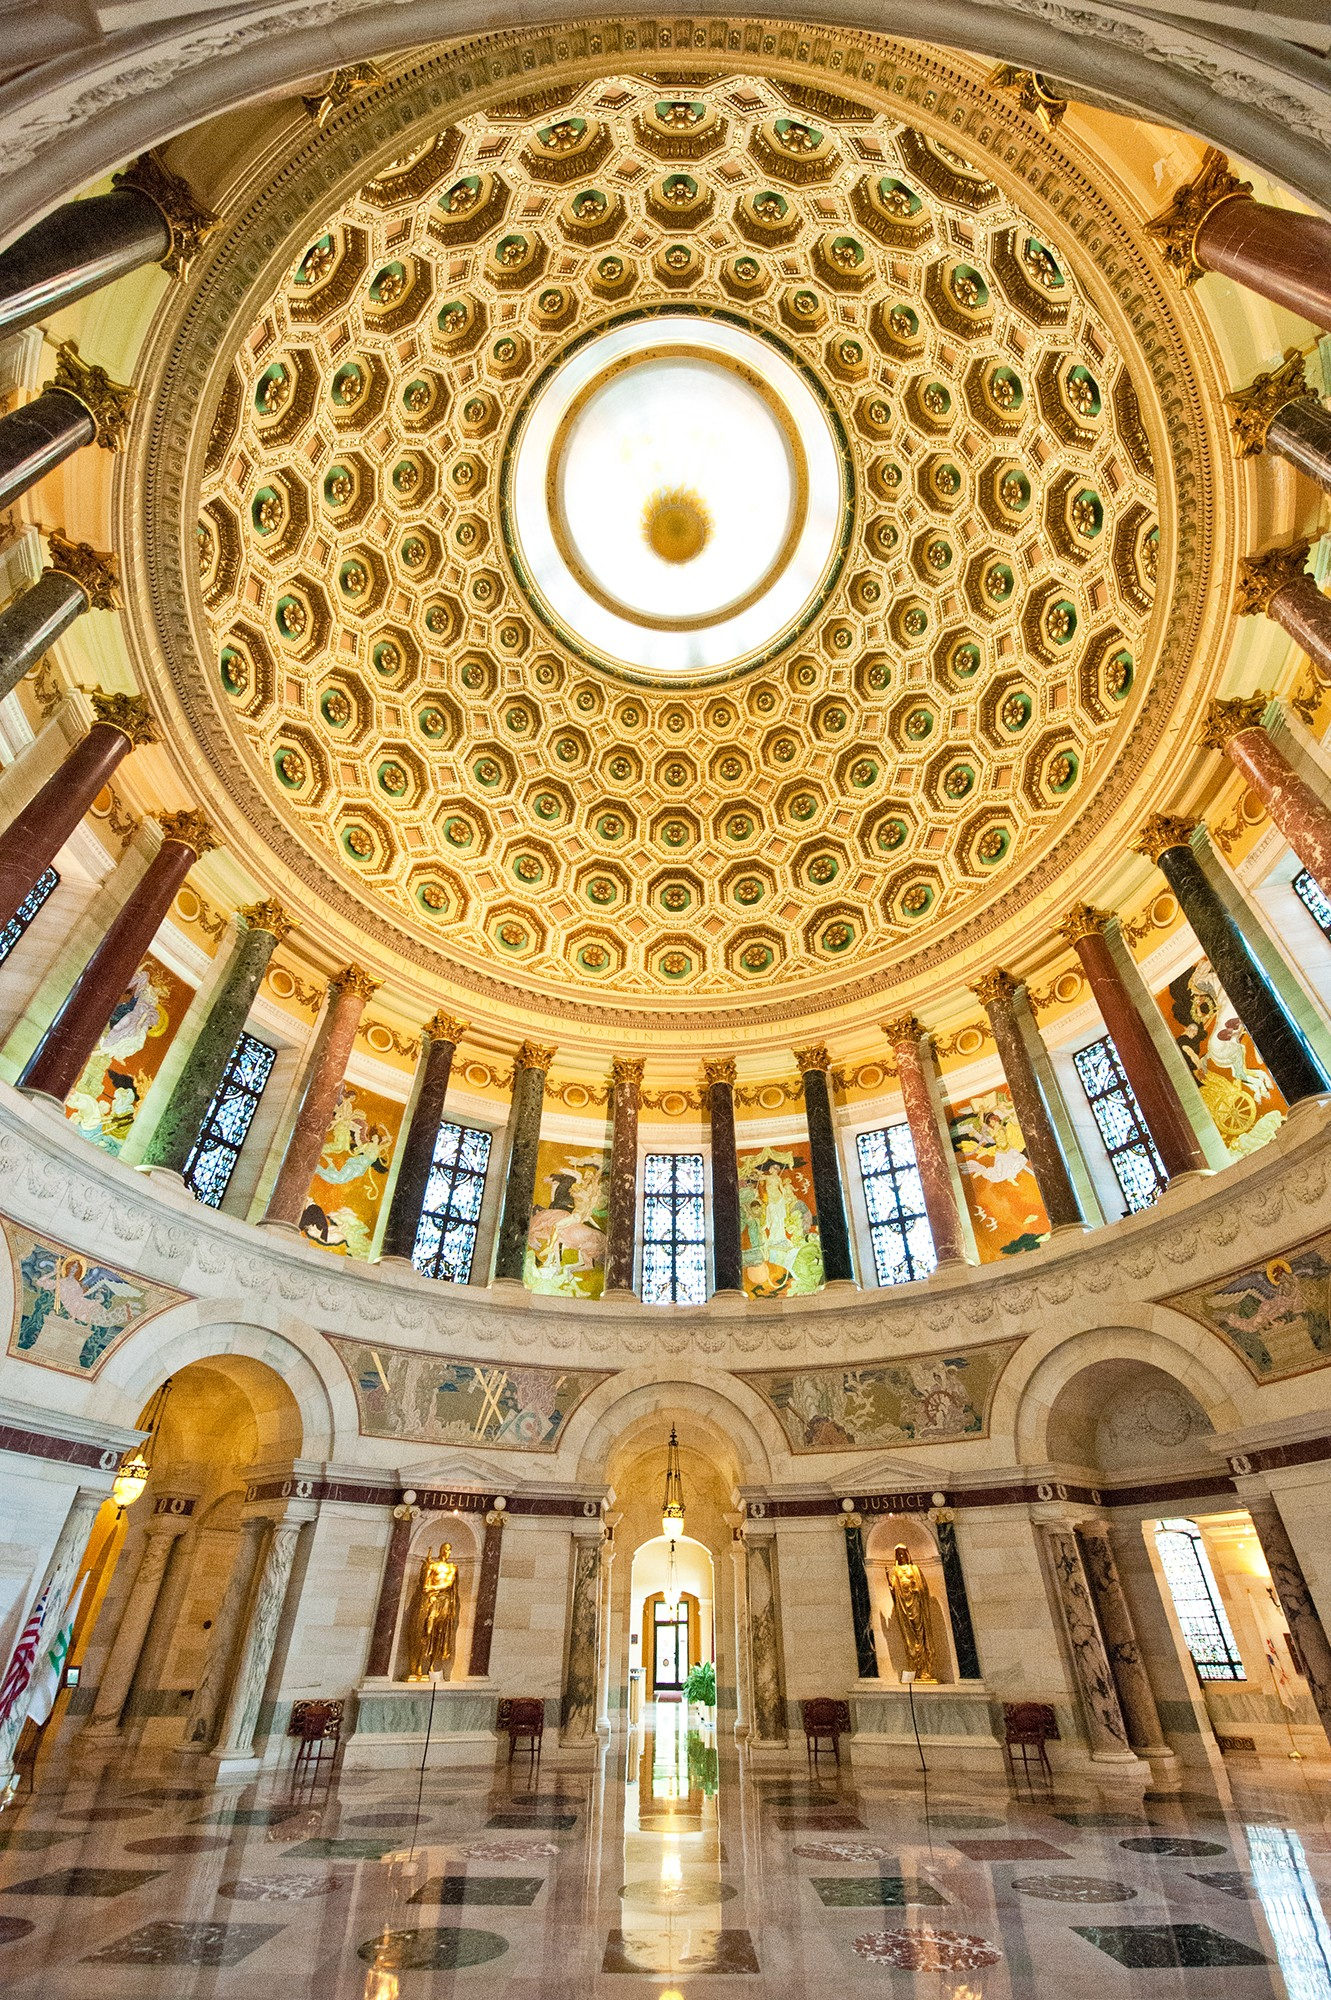 North Park Lincoln >> Elks National Memorial · Sites · Open House Chicago